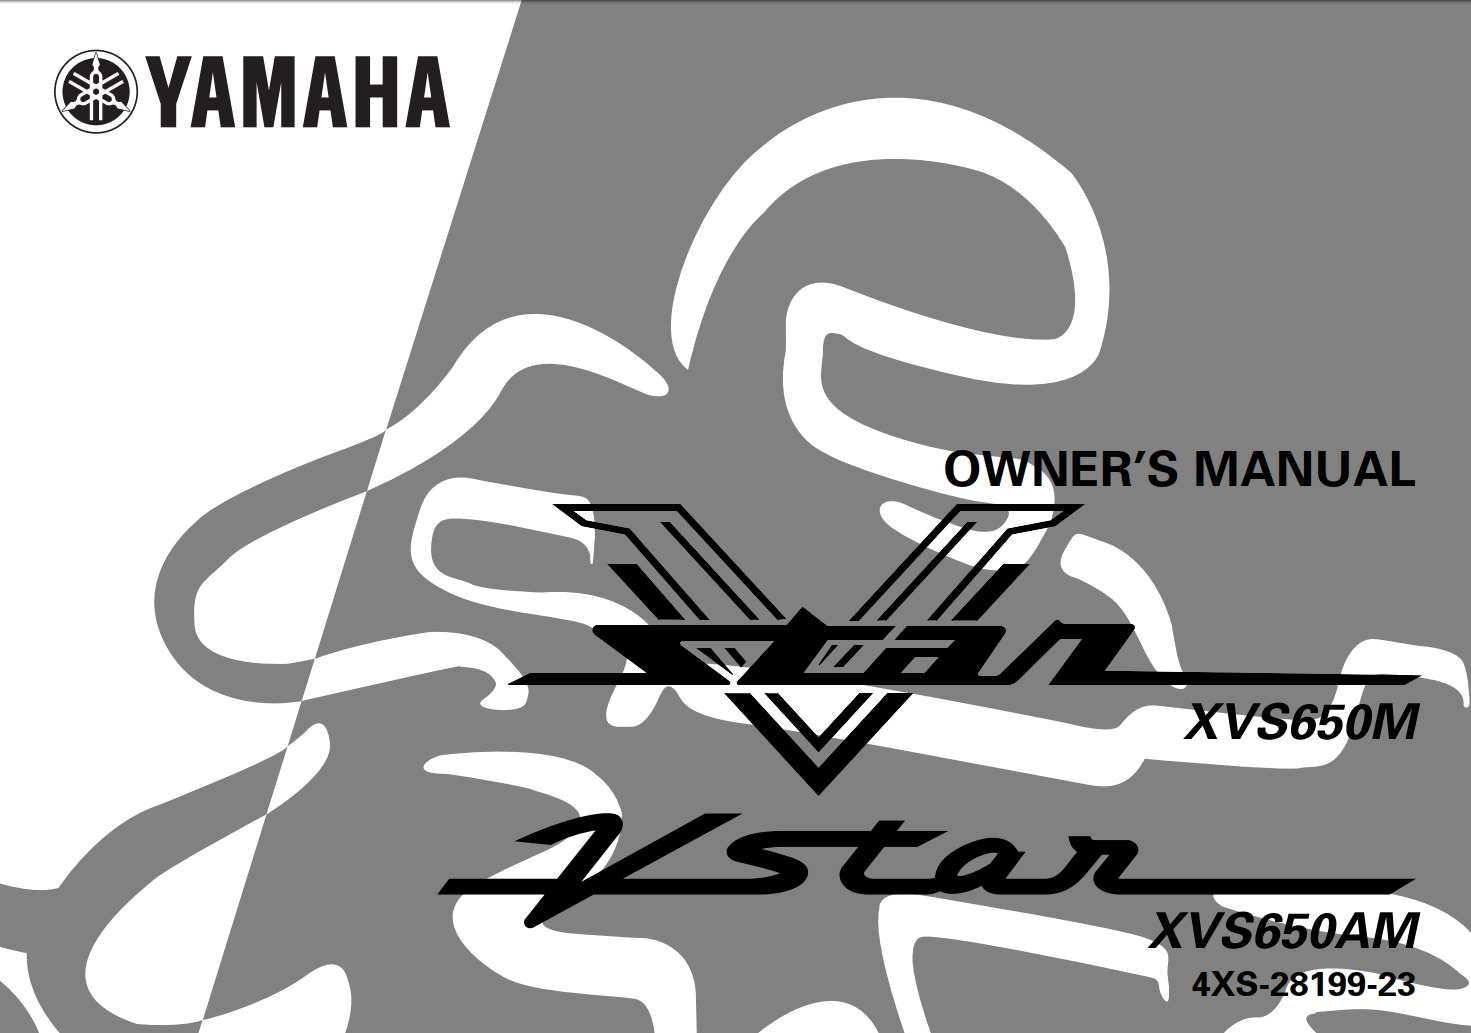 Yamaha Xvs650 M Am 2000 Owner S Manual In 2020 Yamaha Manual Owners